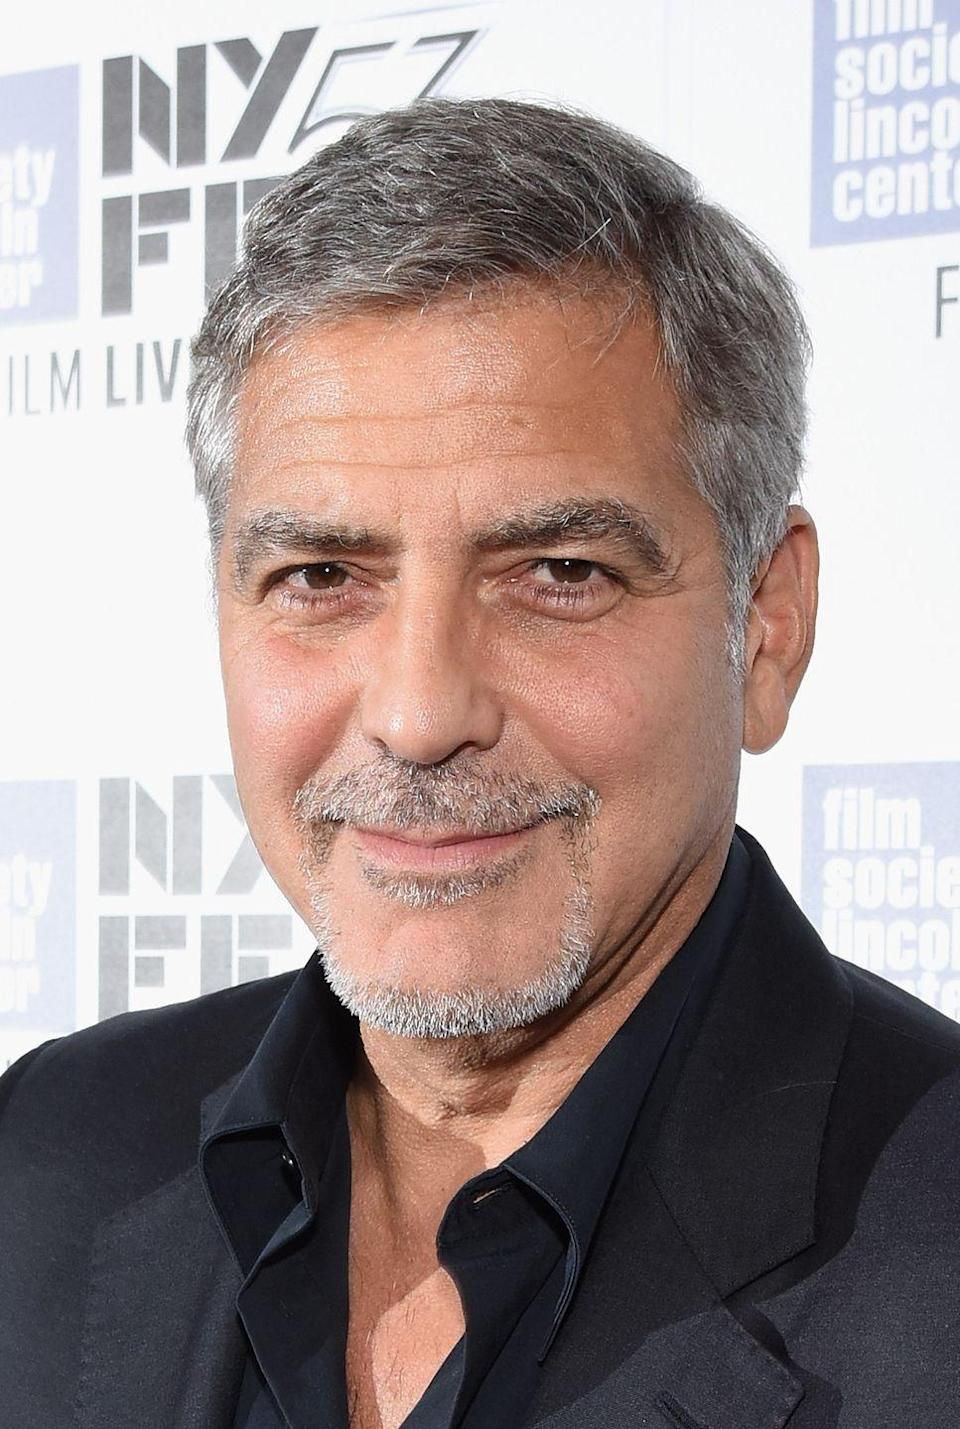 "<p>Even George Clooney doesn't love every role he stars in, and he <a href=""http://www.vulture.com/2014/10/george-clooney-batman-apologies.html"" rel=""nofollow noopener"" target=""_blank"" data-ylk=""slk:continuously apologizes"" class=""link rapid-noclick-resp"">continuously apologizes</a> for his role in <em>Batman </em>years later<em>. </em>""Let me just say that I'd actually thought I'd destroyed the franchise until somebody else brought it back years later and changed it. I thought at the time that this was going to be a very good career move. It wasn't."" </p>"